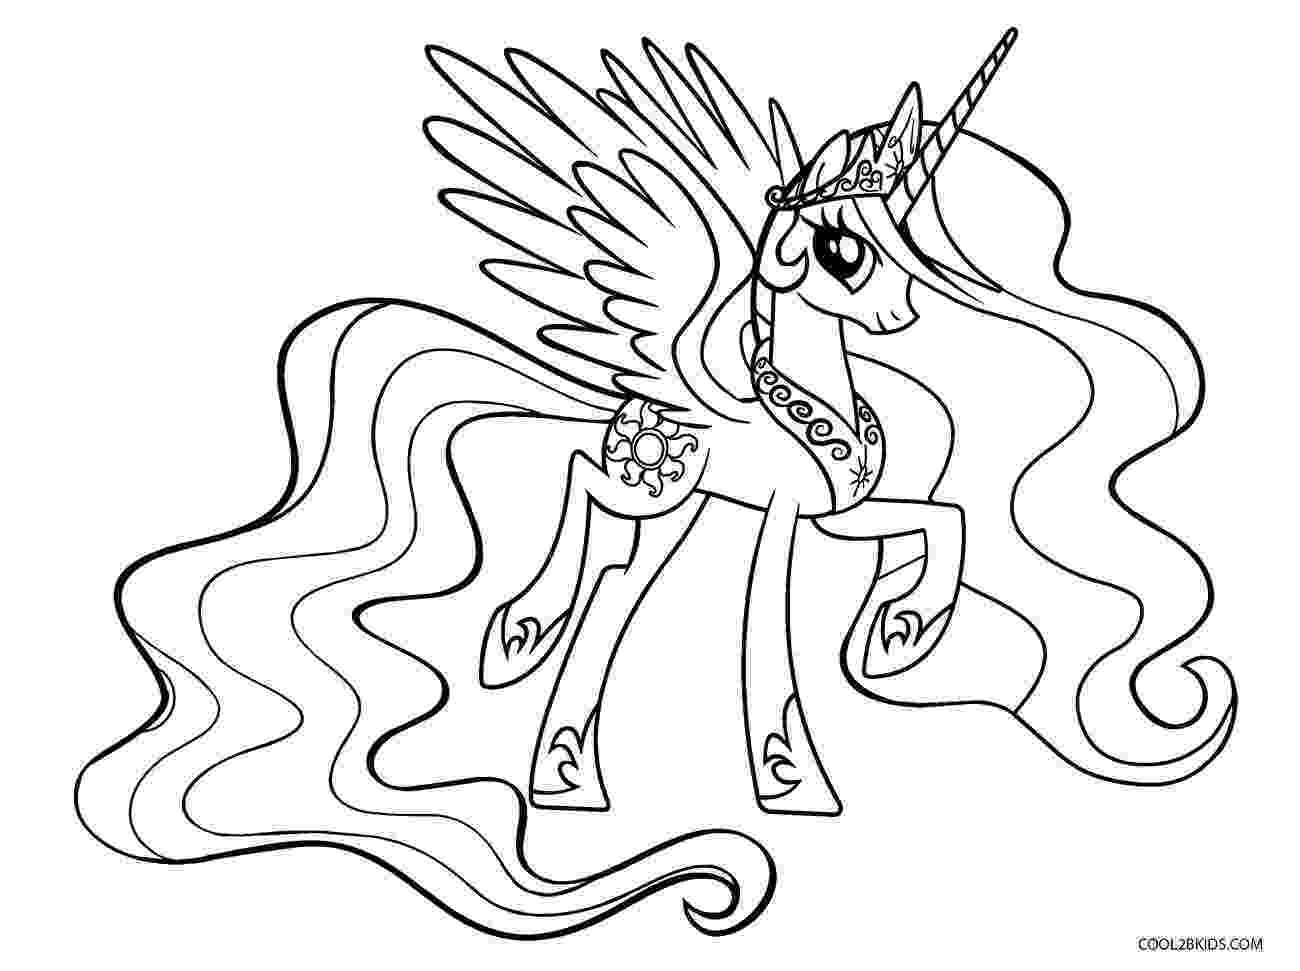 coloring pages of my little pony my little pony pinkie pie coloring pages team colors my pony coloring pages little of